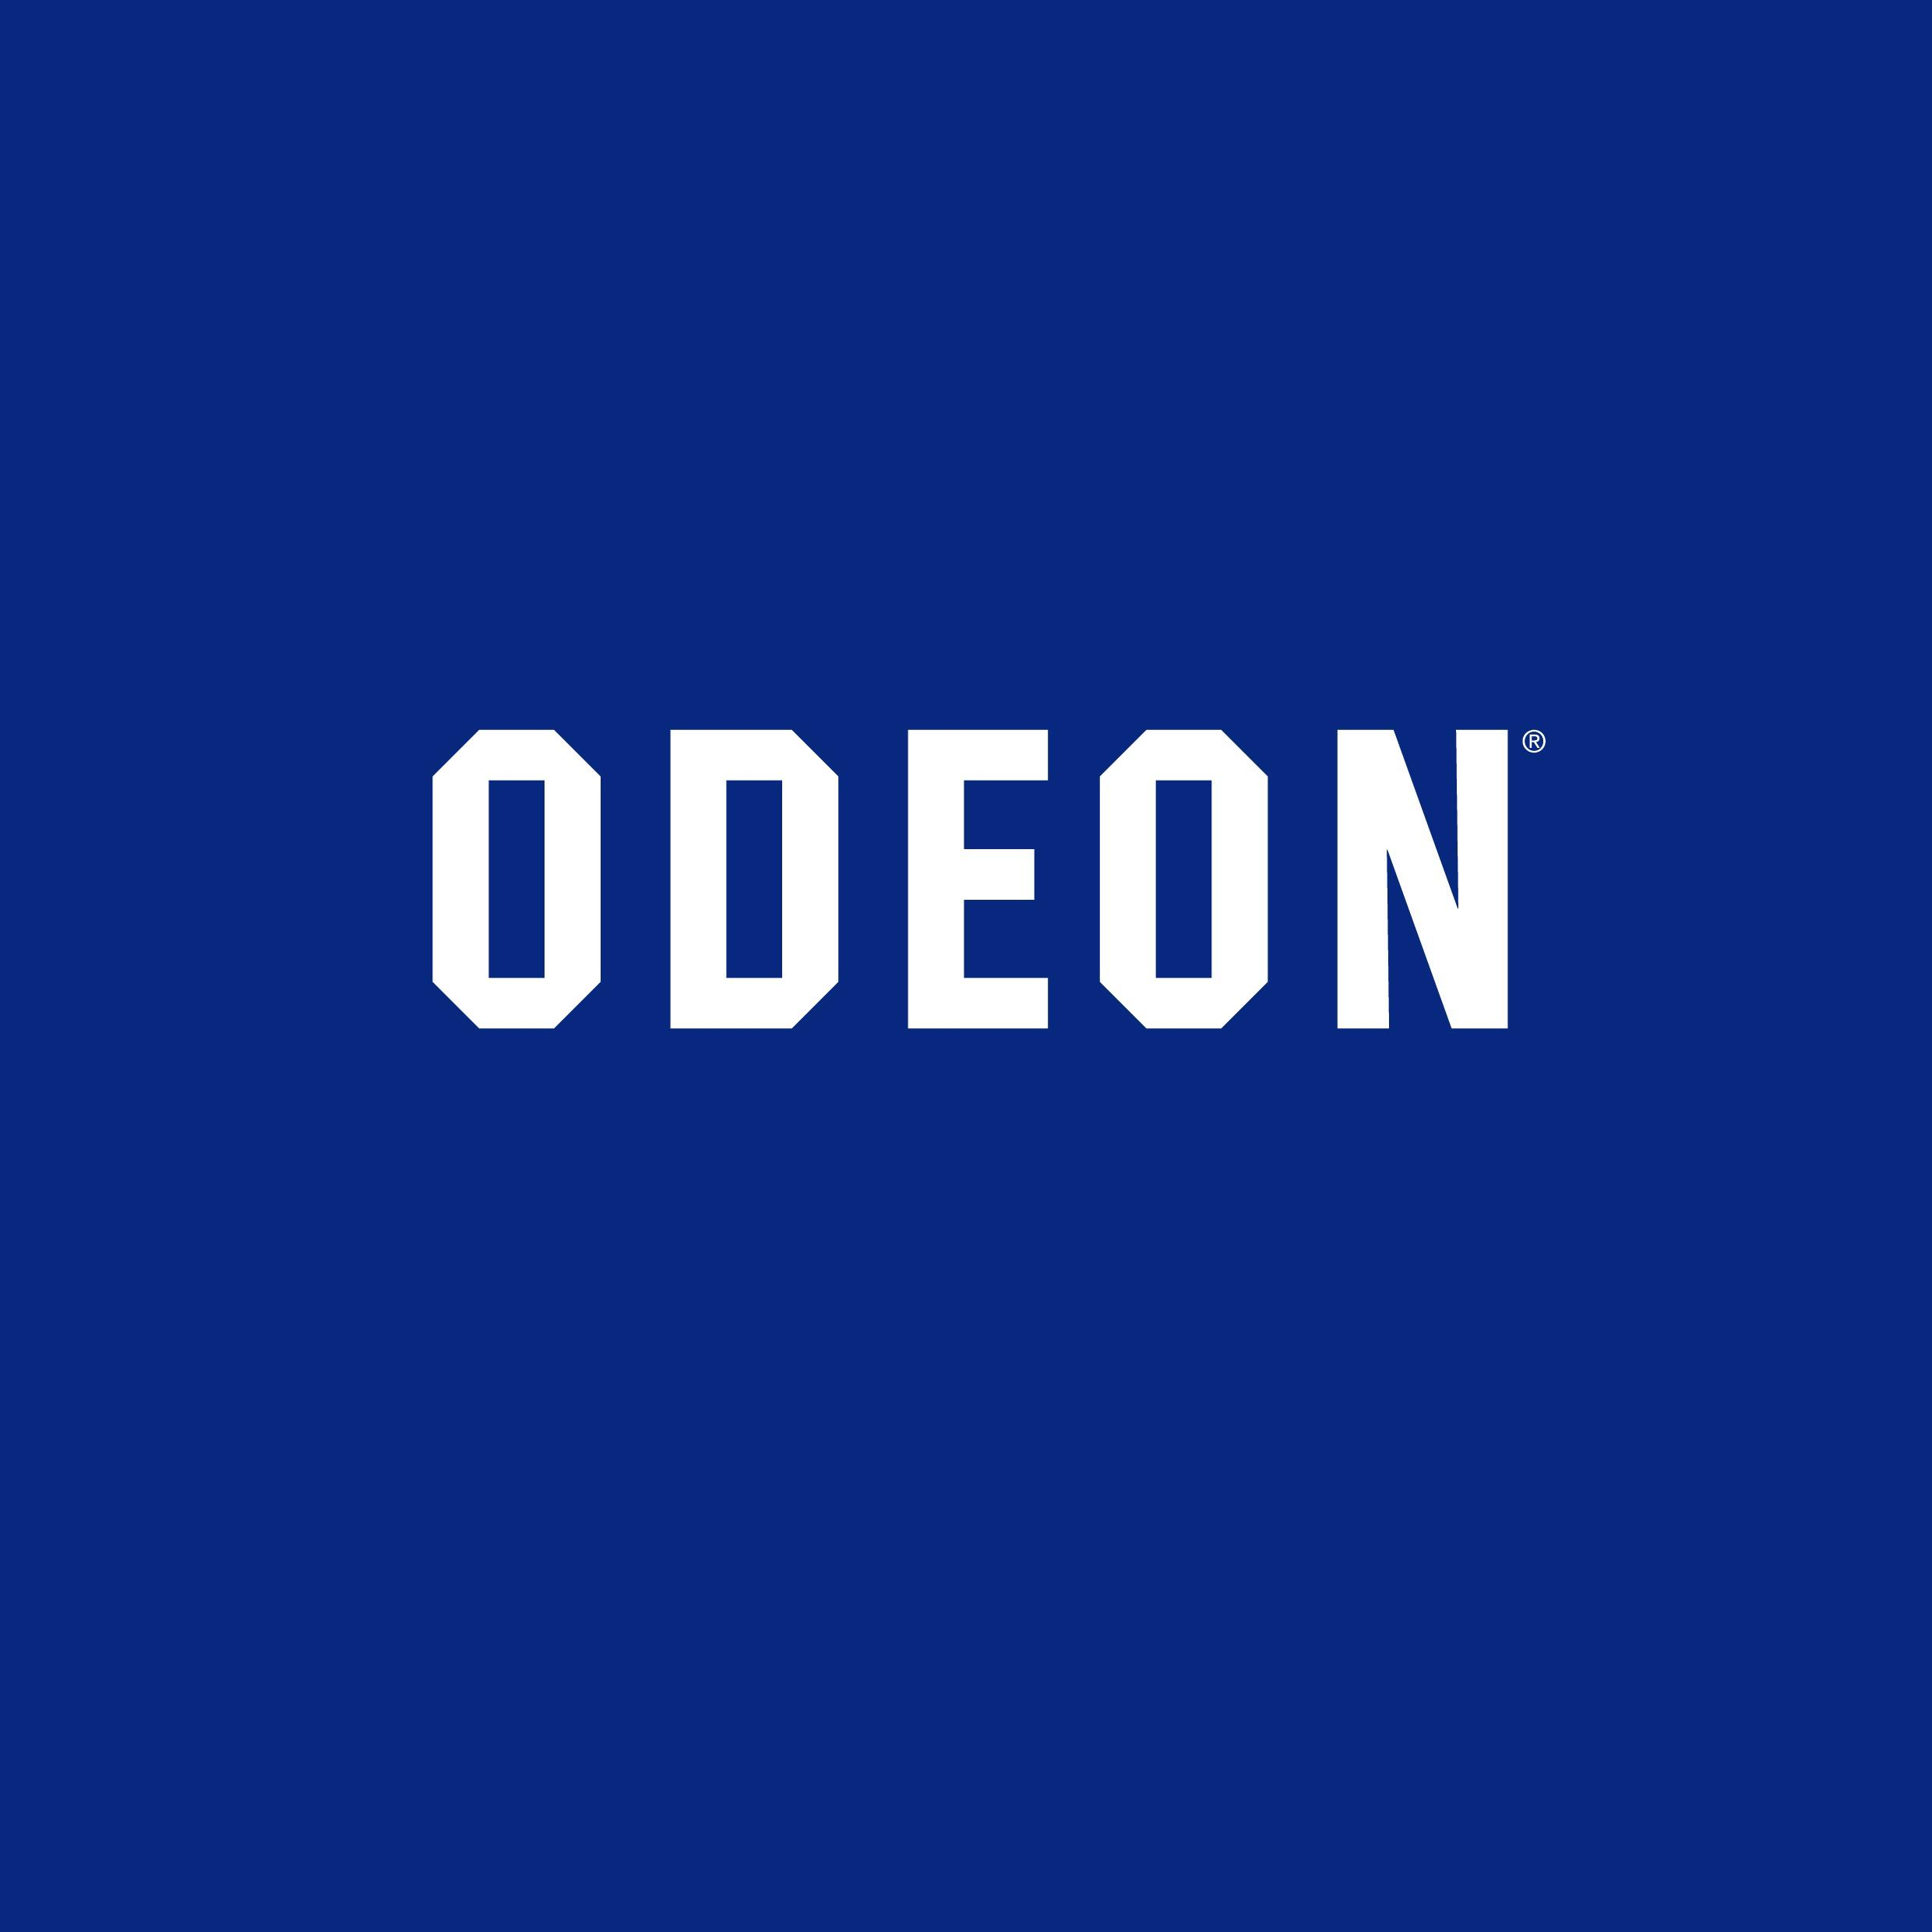 ODEON Orpington - Kent, London BR6 0TW - 03330 144501 | ShowMeLocal.com